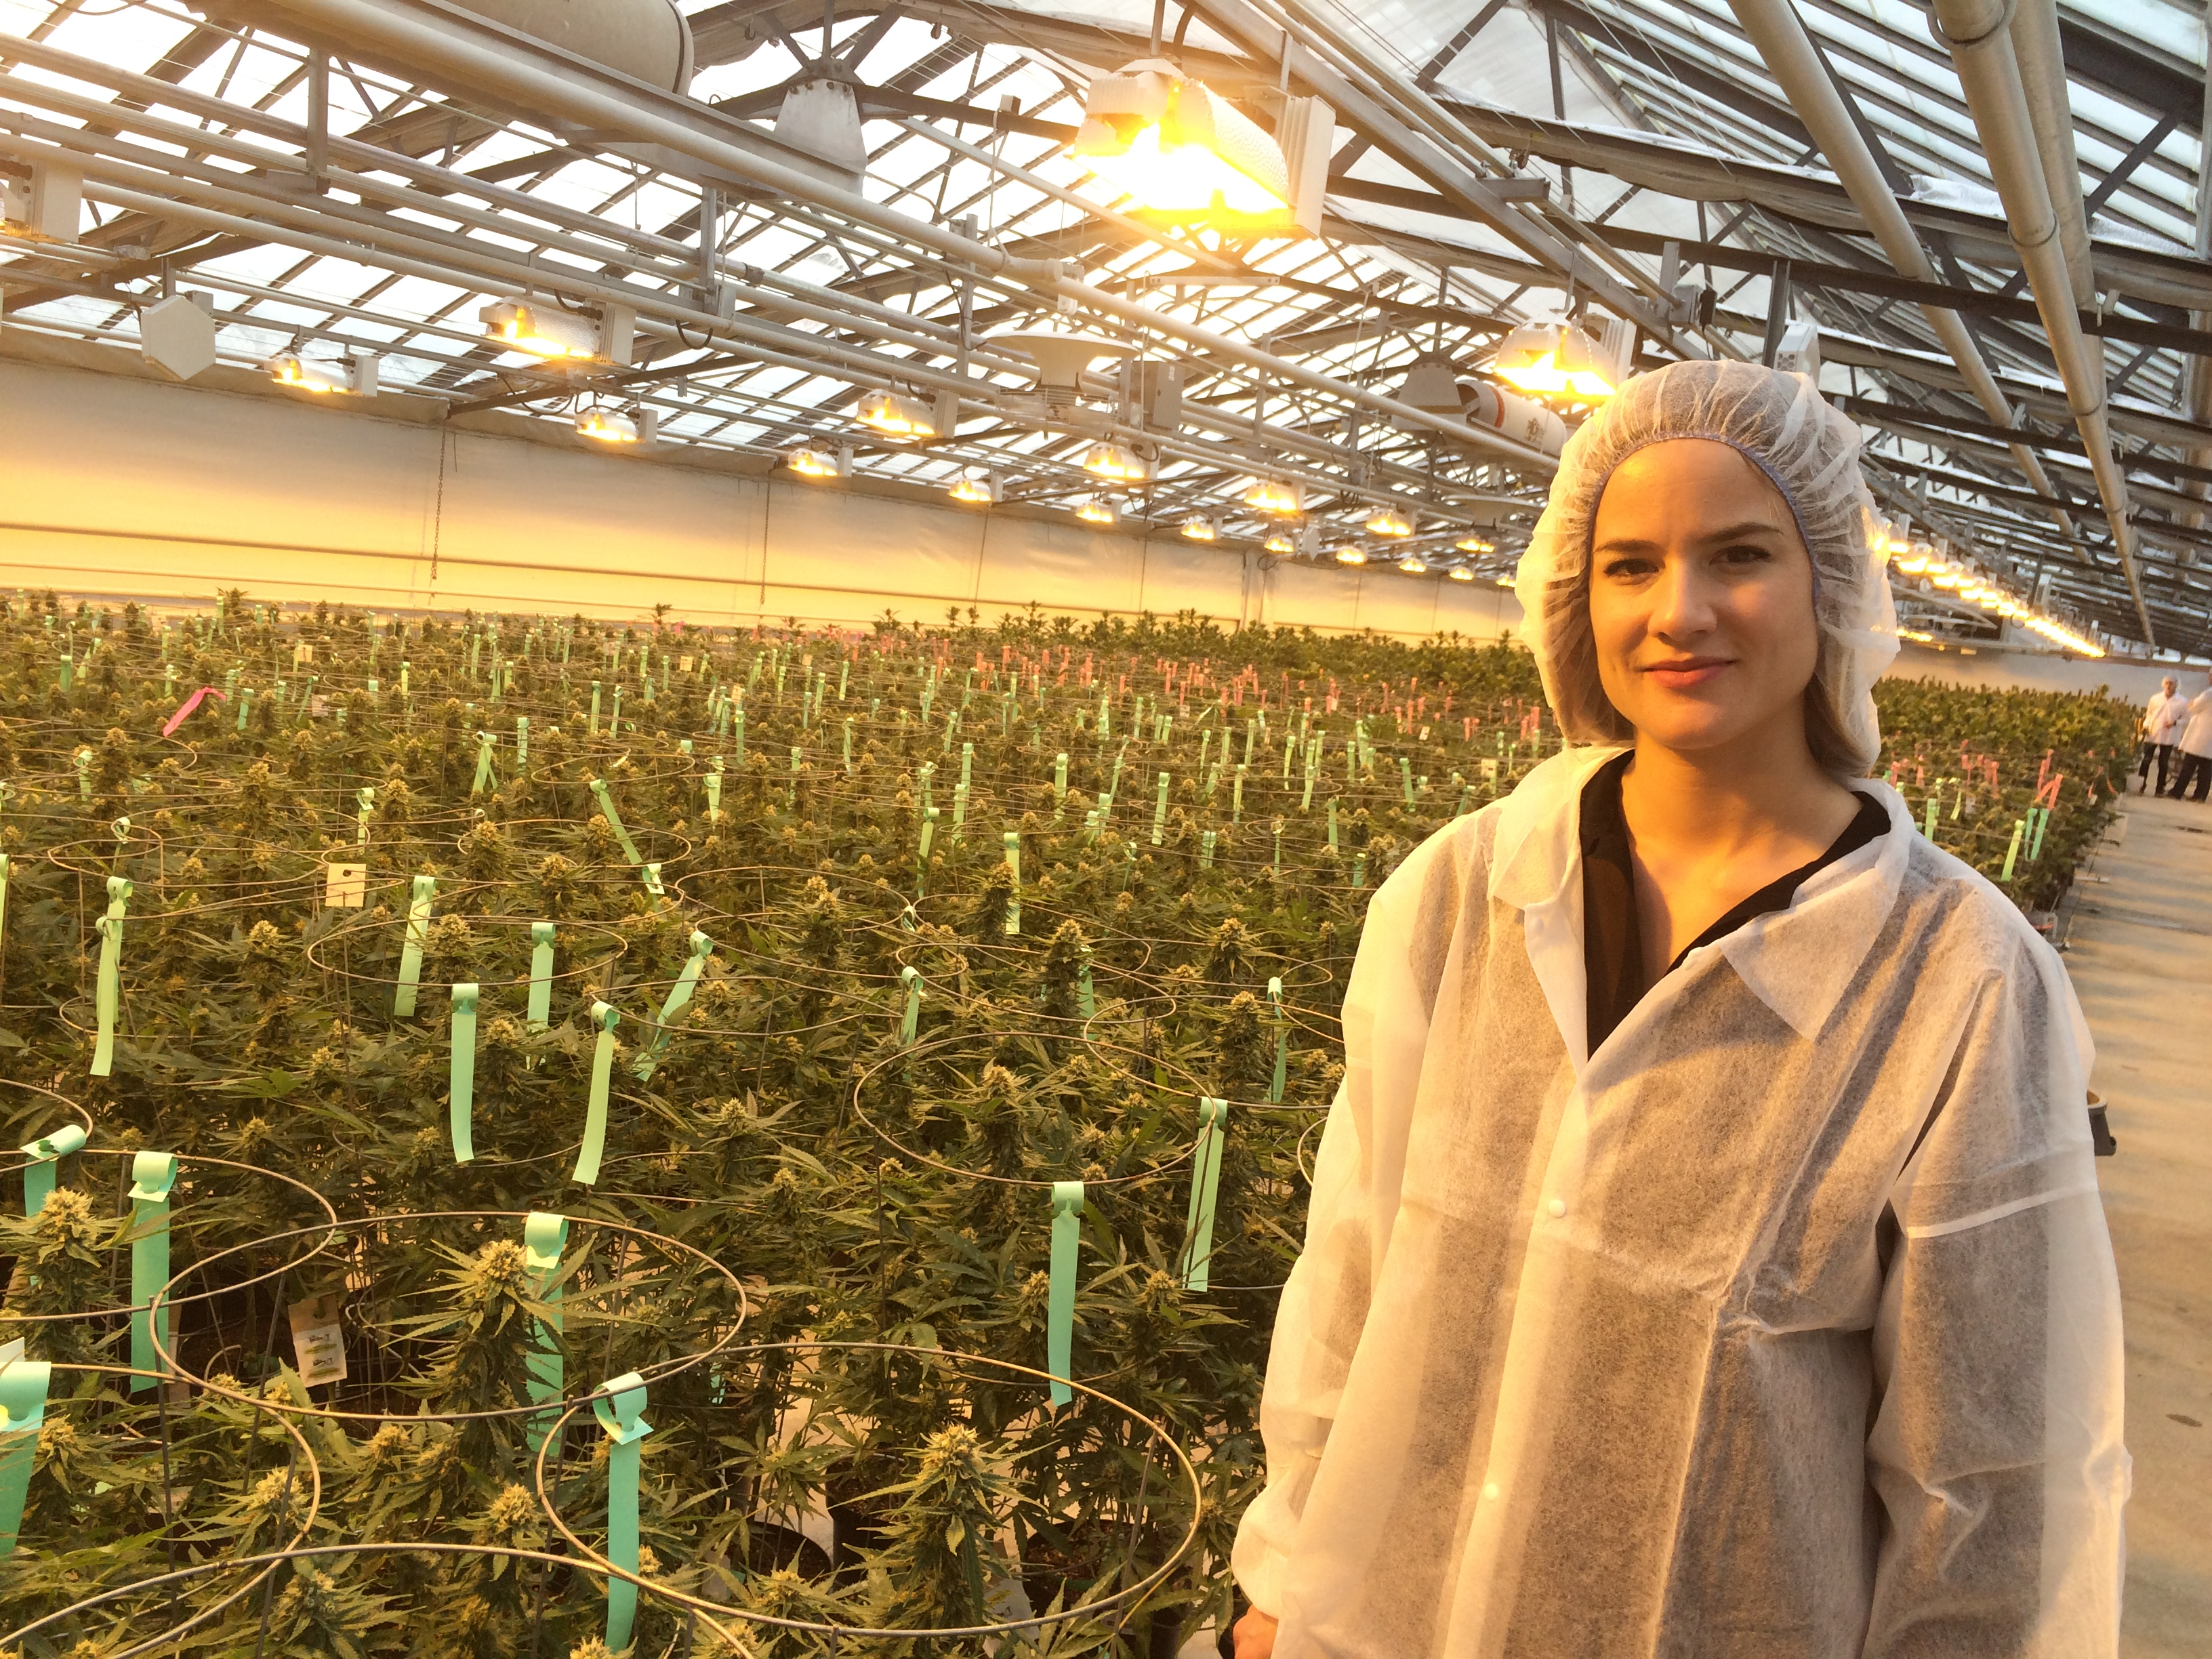 Sarah Dobbin, Patient Care Manager at Aphria, stands next to rows of medical marijuana plants at the company's Leamington greenhouses on February 19, 2016. (Photo by Ricardo Veneza)